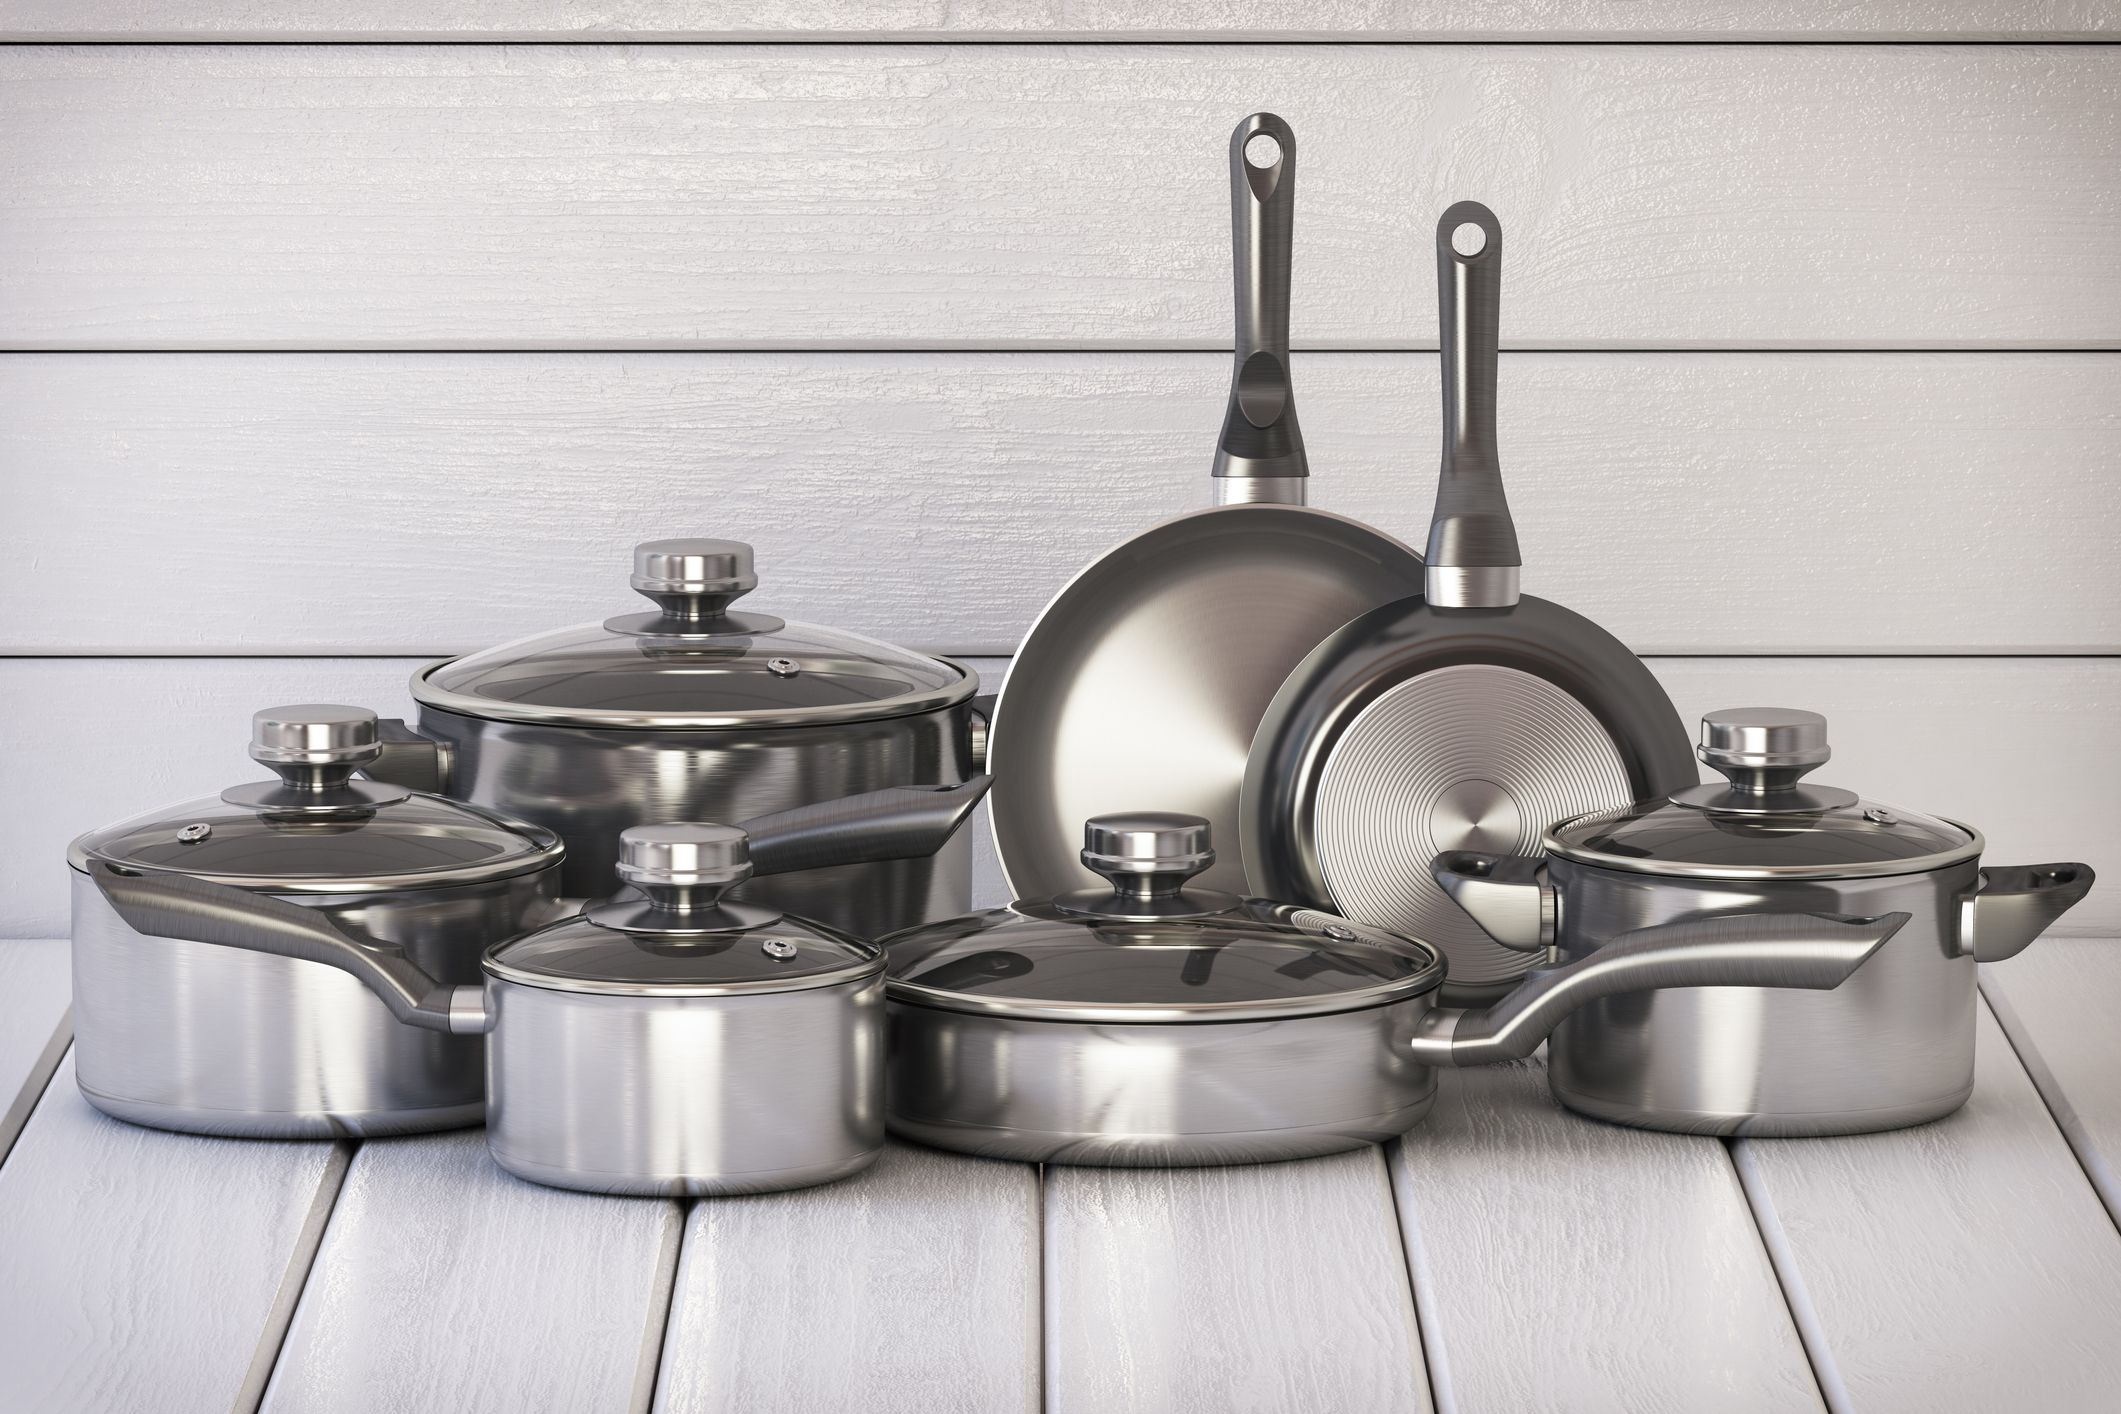 Pans buying guide - how to buy the best cookware for your kitchen